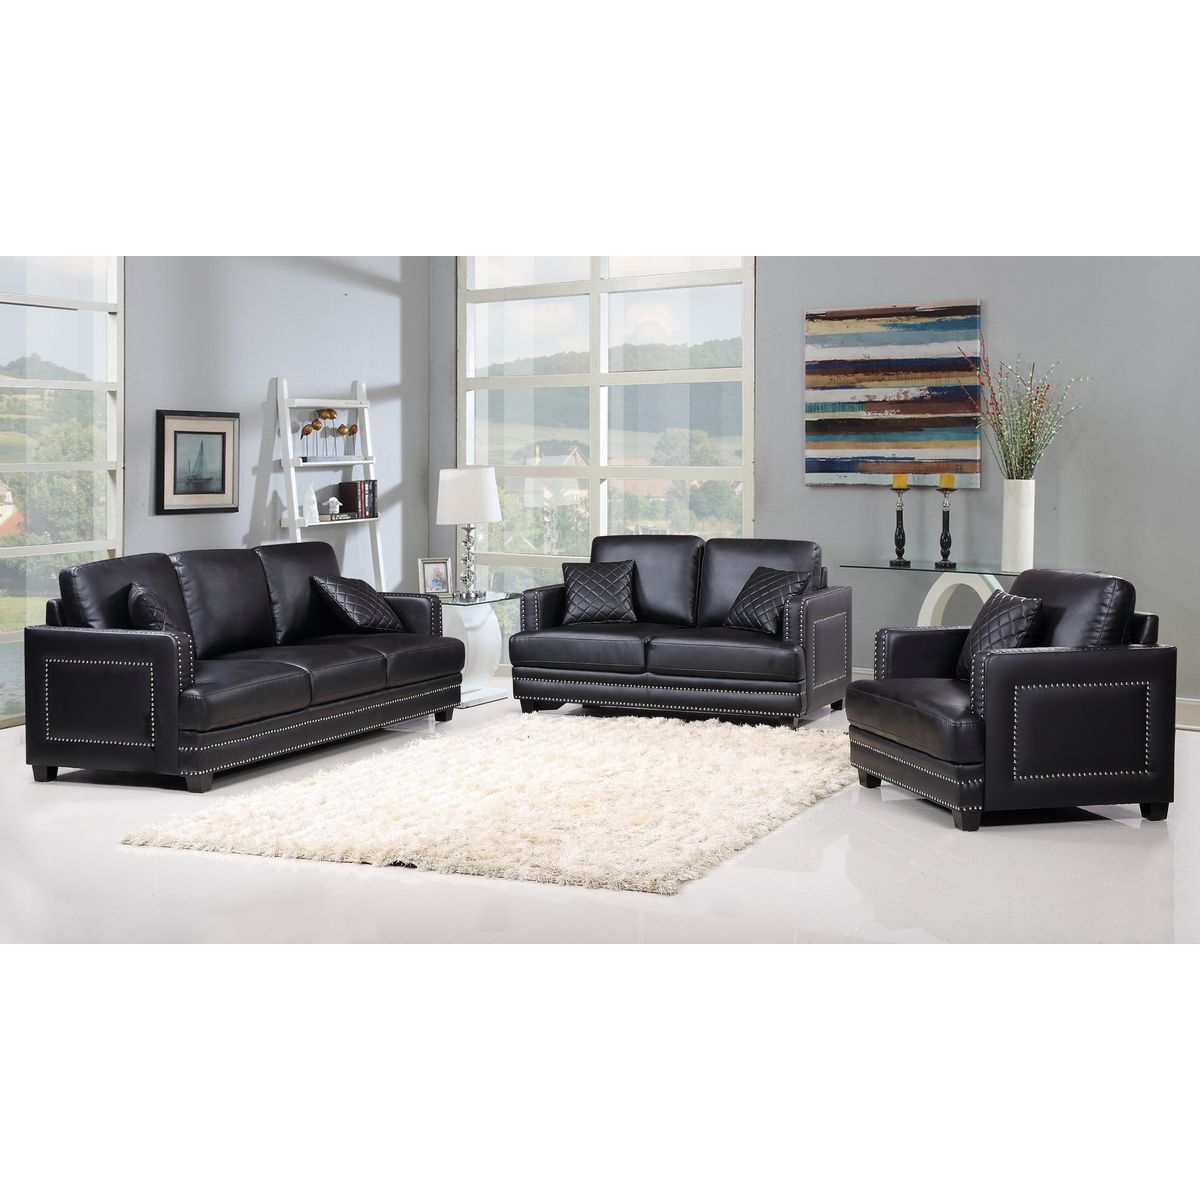 Meridian 655BL-S Ferrara Black Leather Sofa w/ Silver Nailhead ...